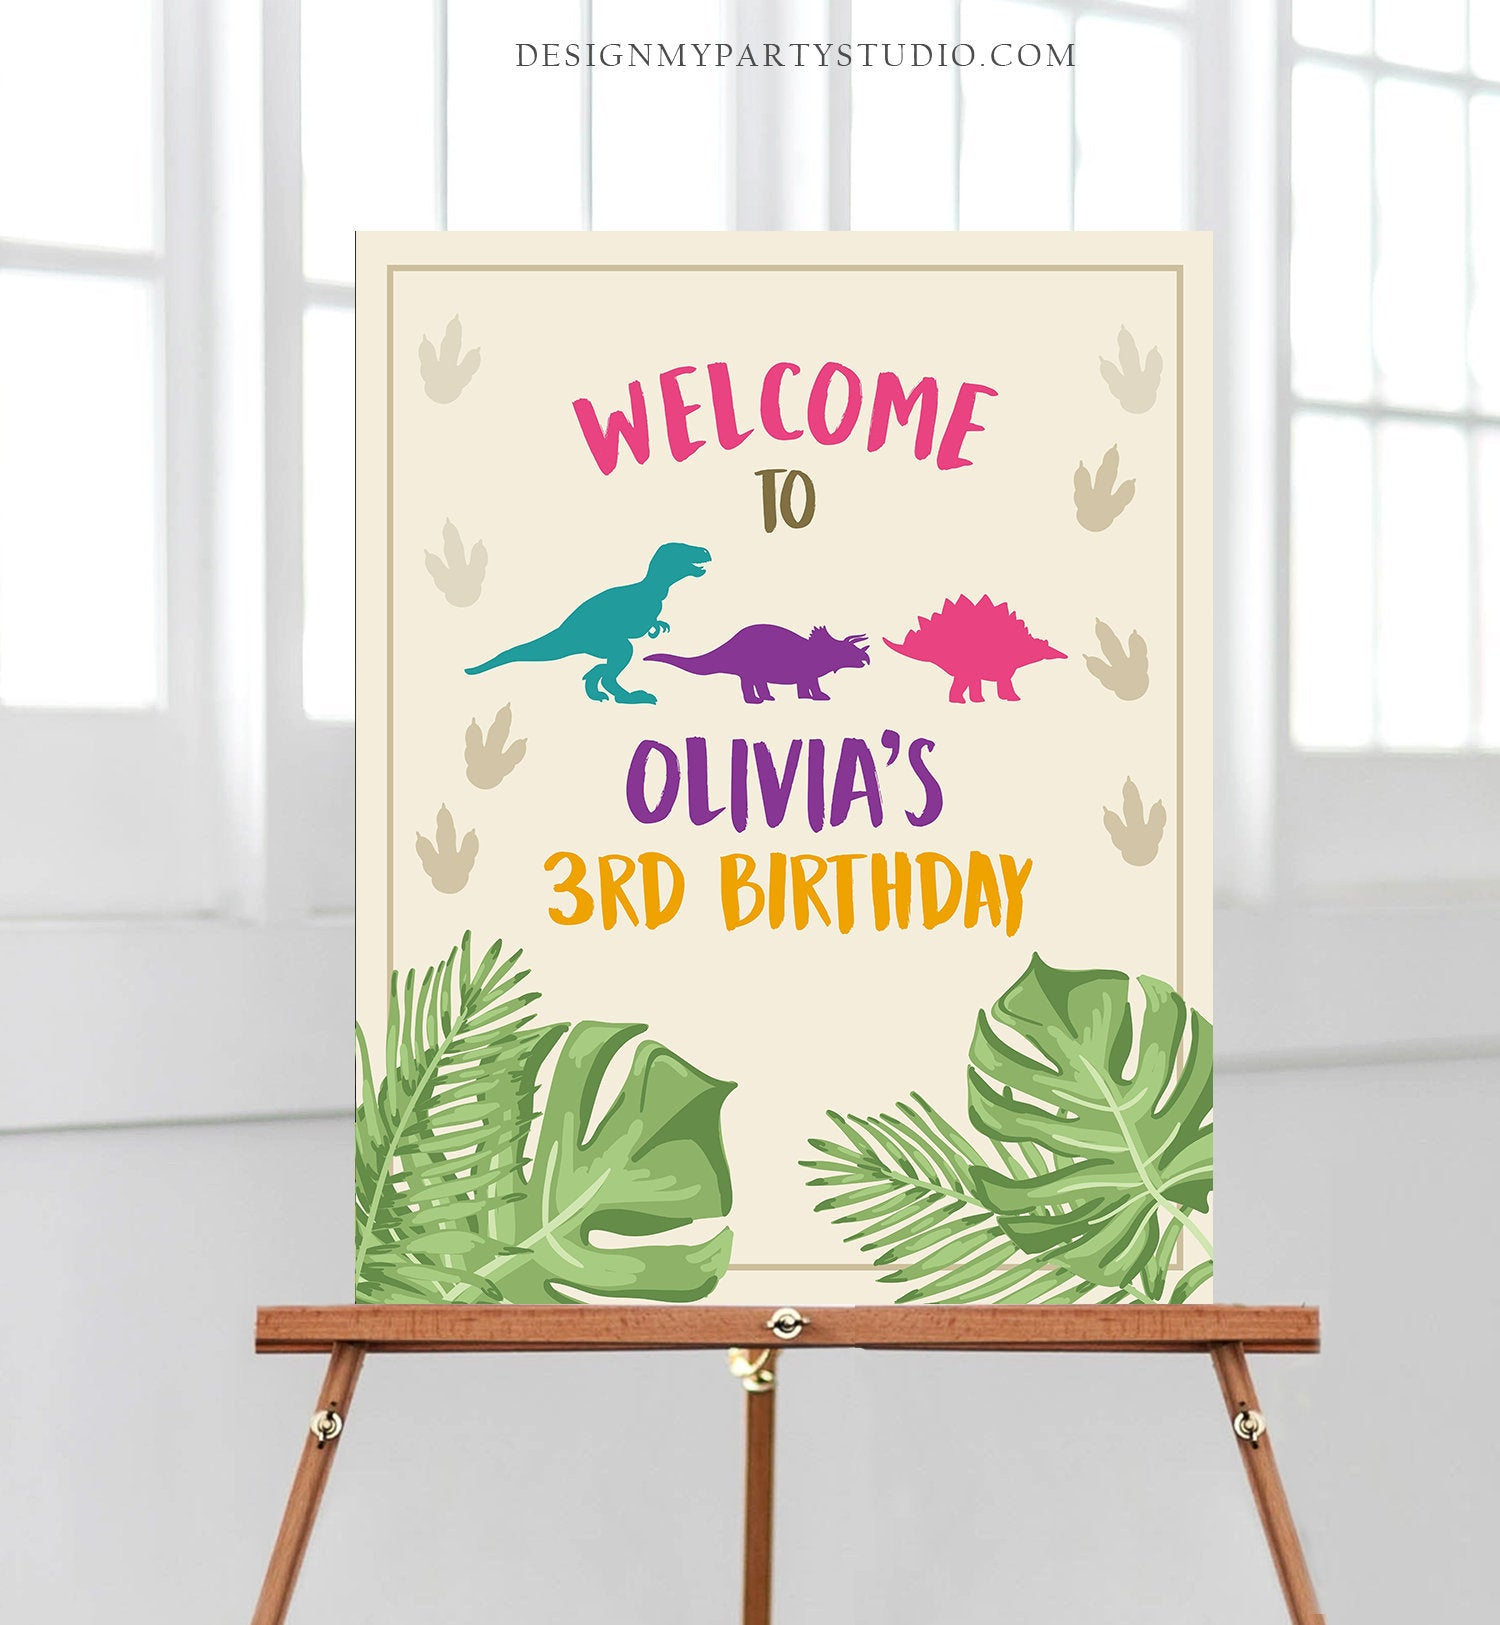 Editable Dinosaur Welcome Sign Birthday Party Table Sign Welcome Dino Dig Party Girl Pink Digital Download Template Printable Corjl 0043